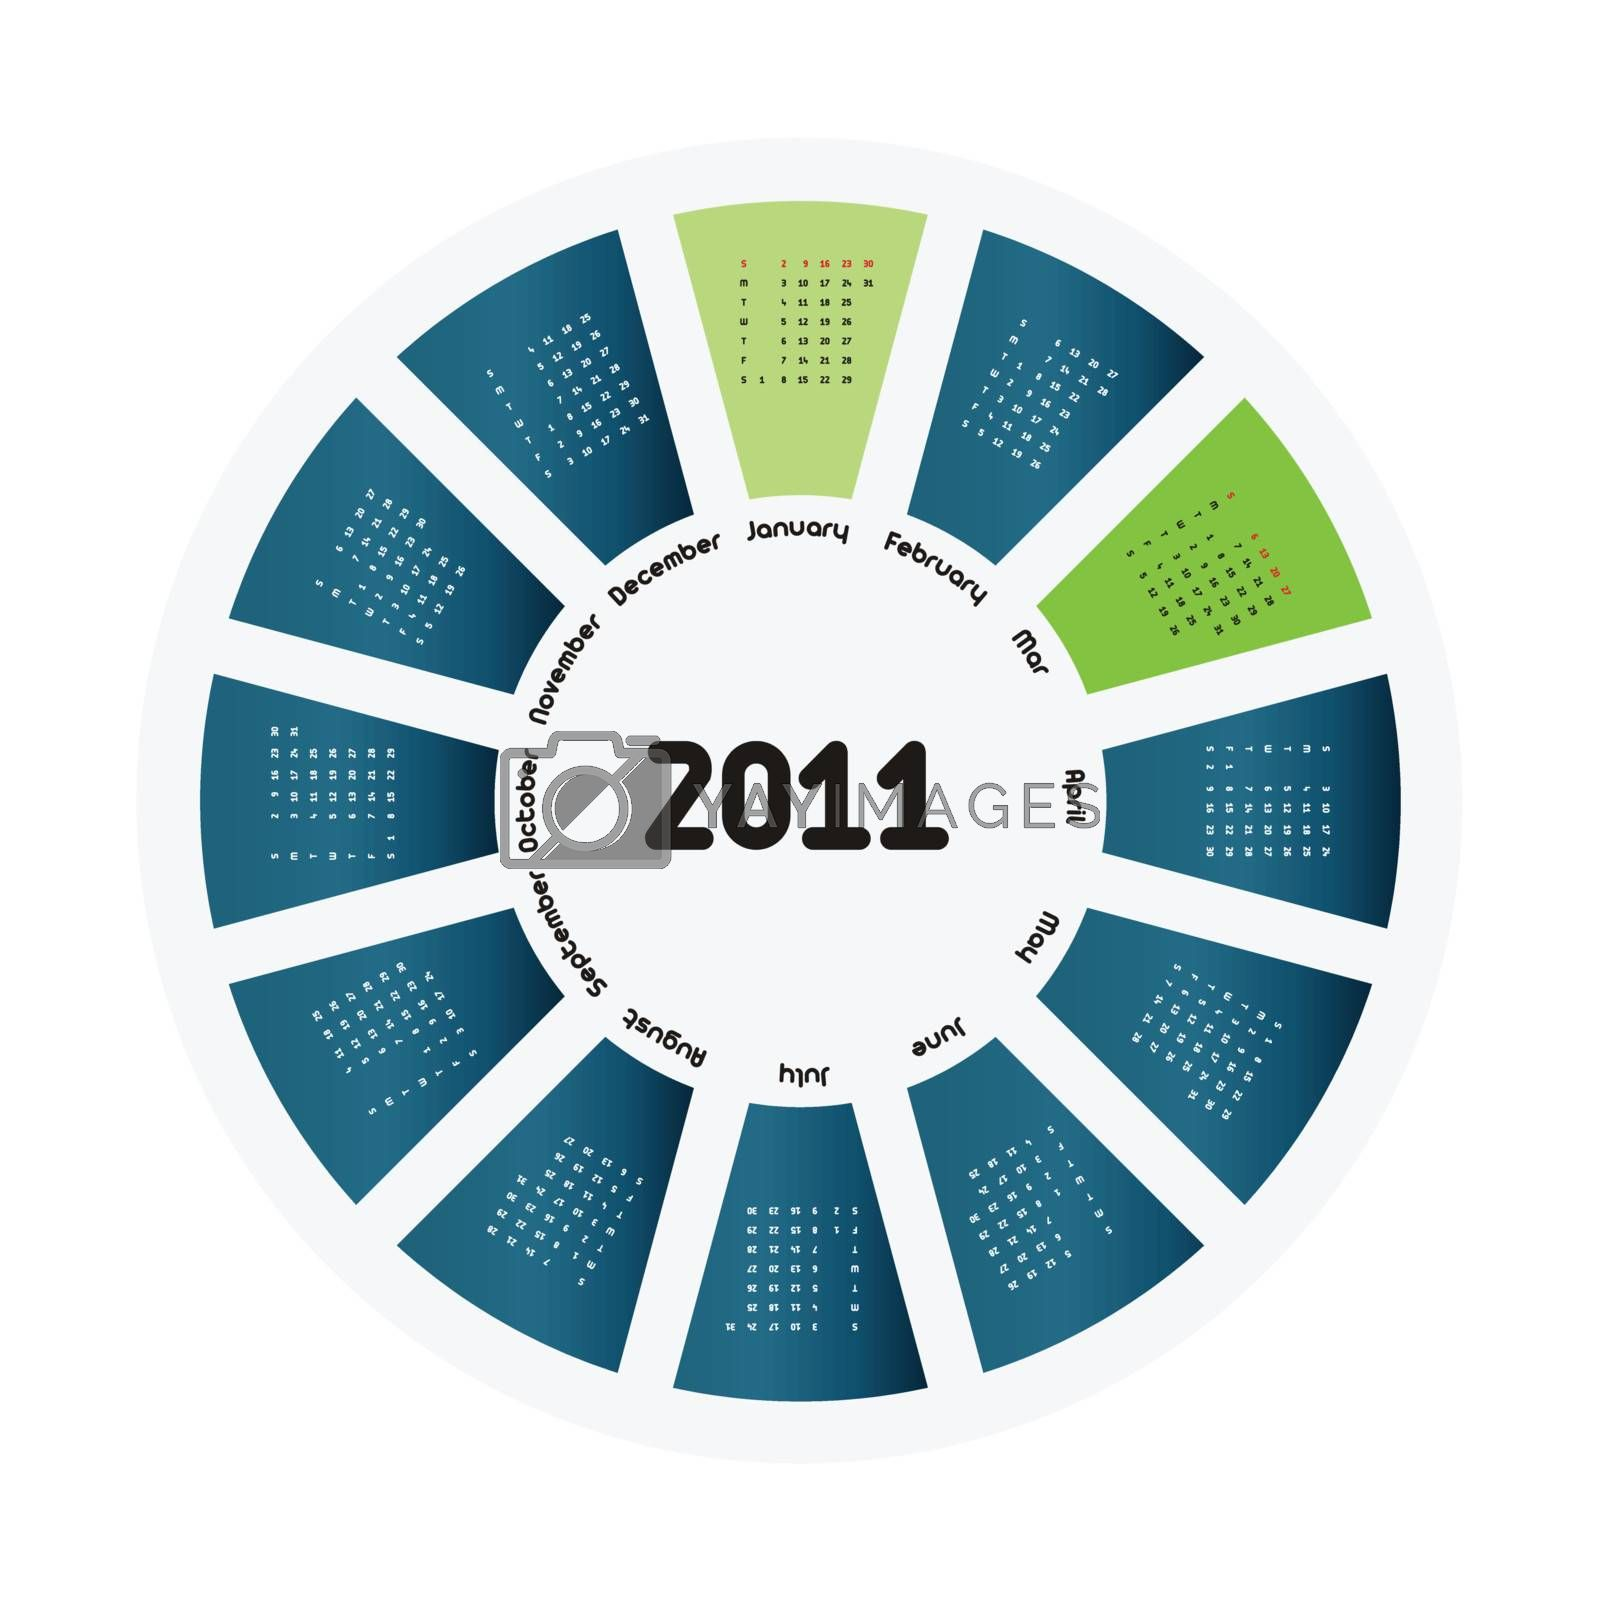 Circular design of colorful calendar for 2011.Week starts on sunday.